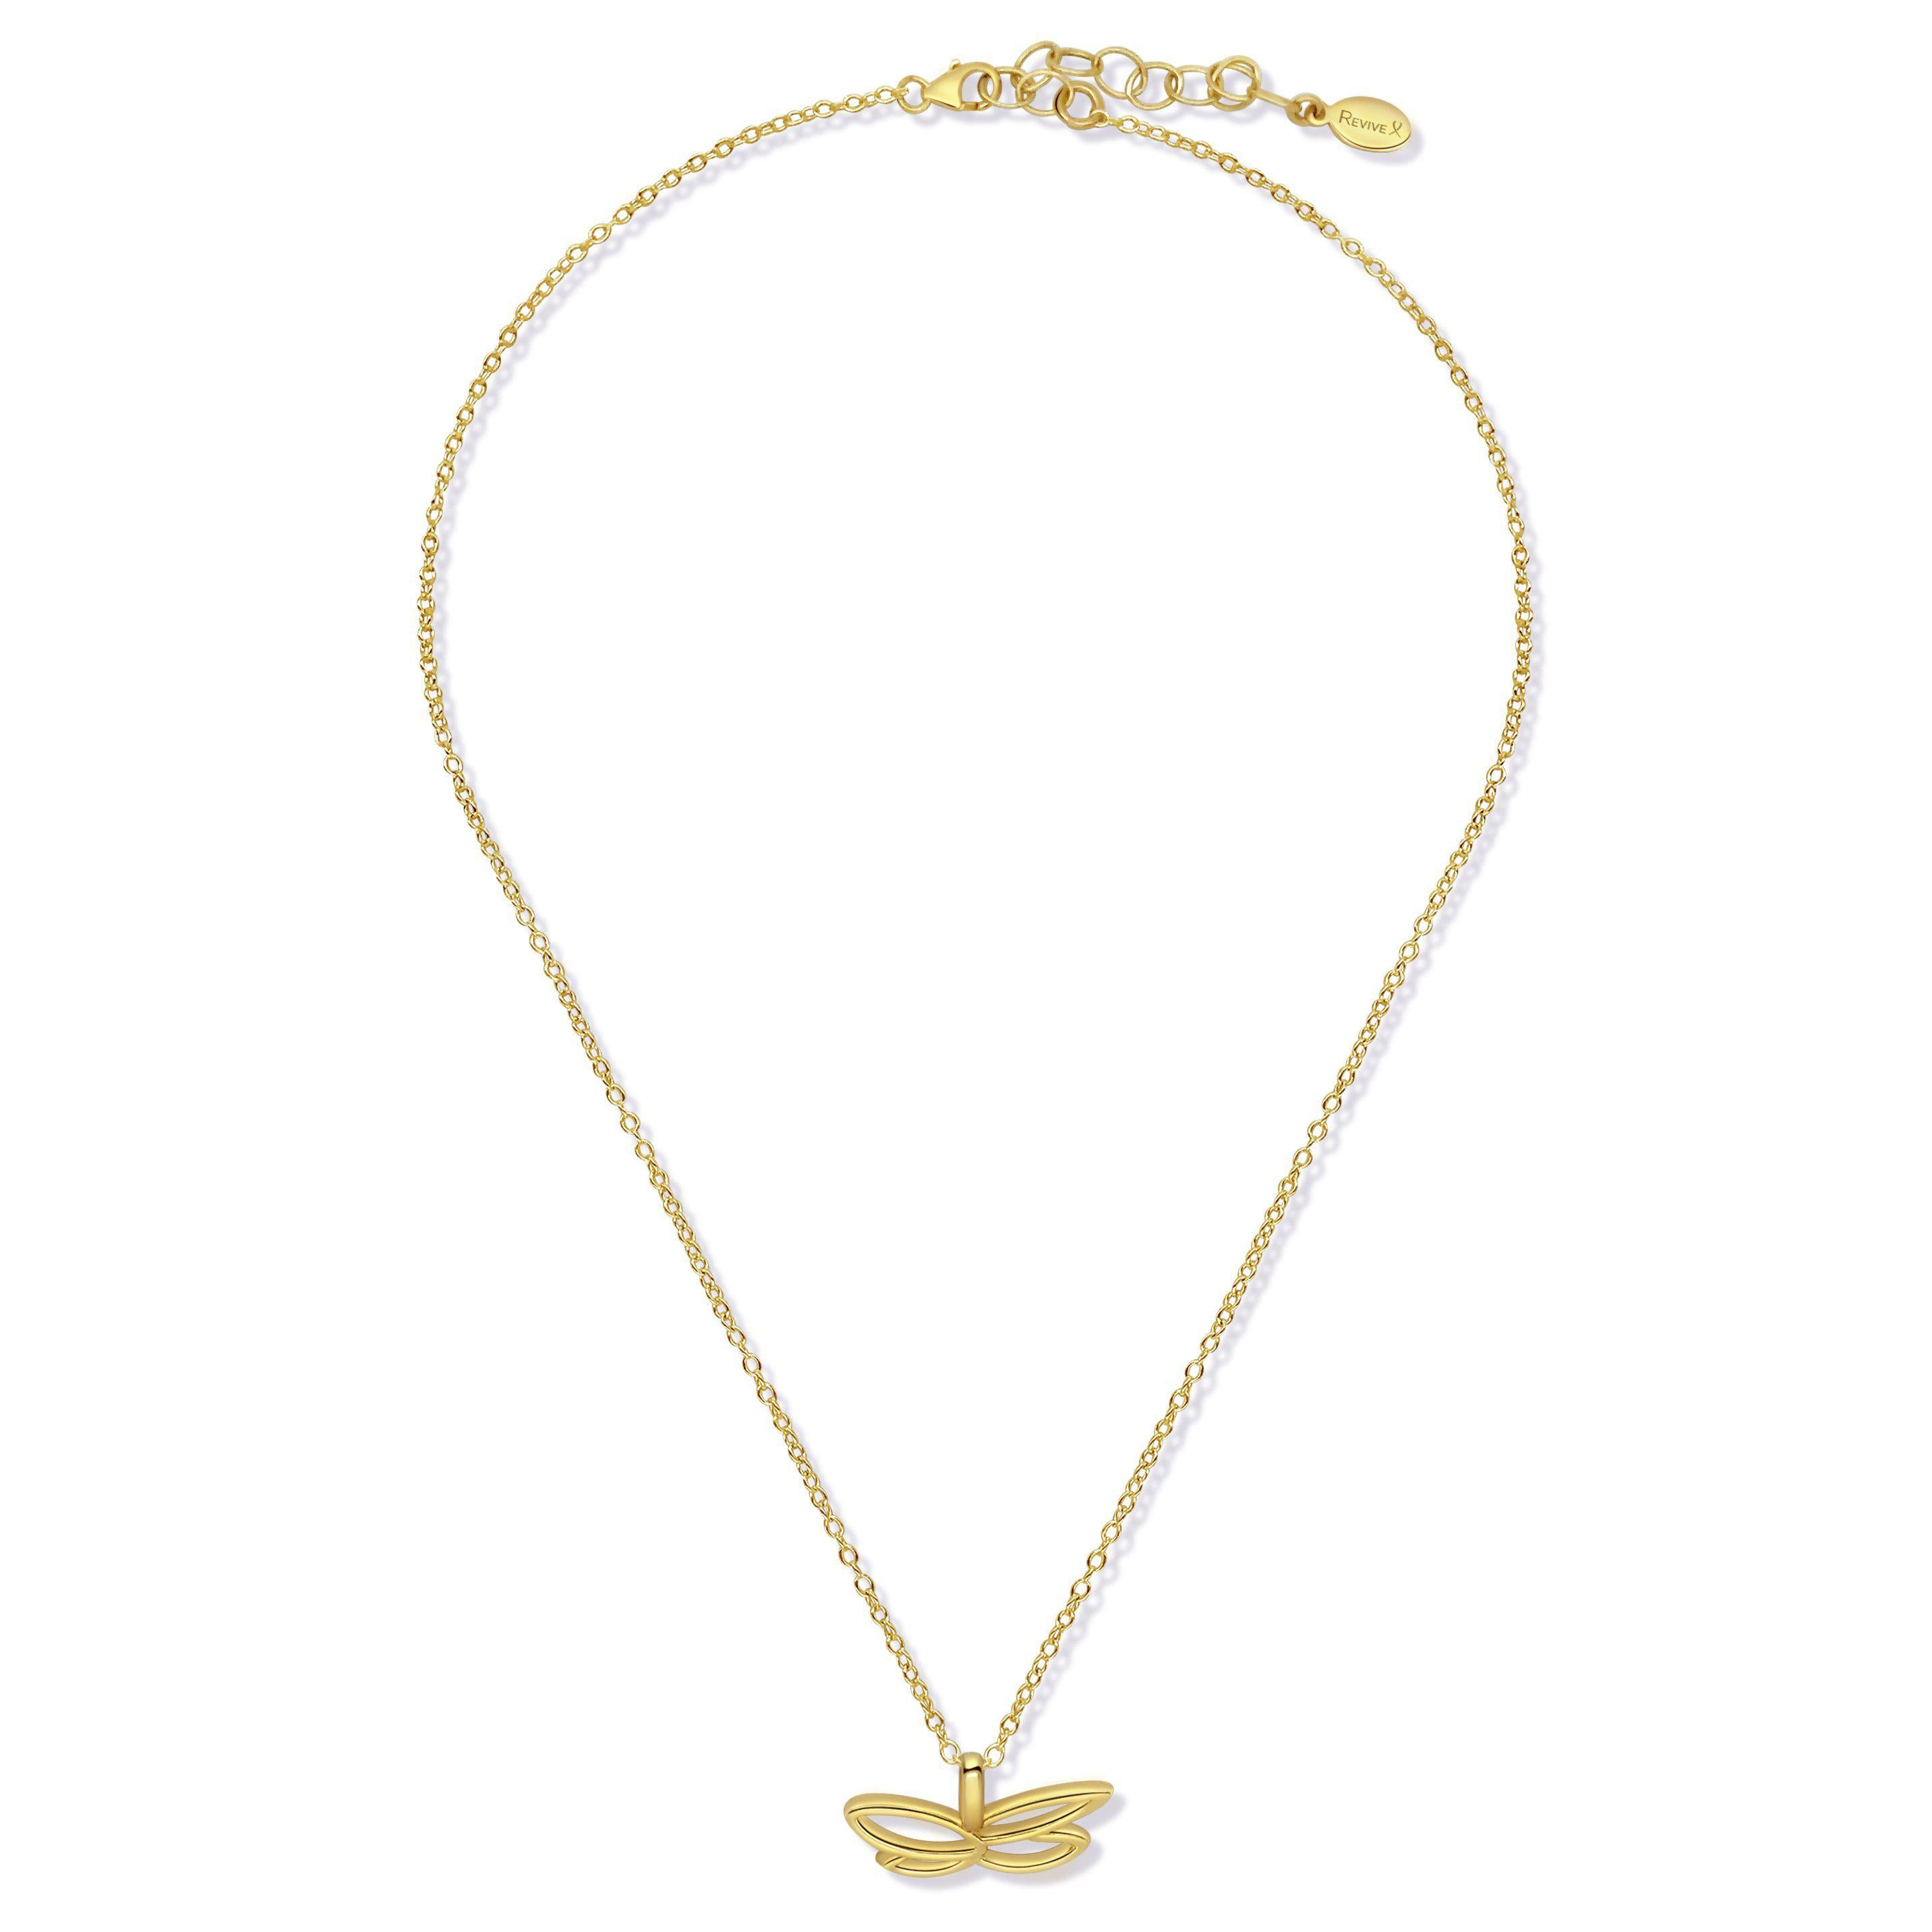 14k gold filled butterfly pendant on dainty chain based on breast cancer cell